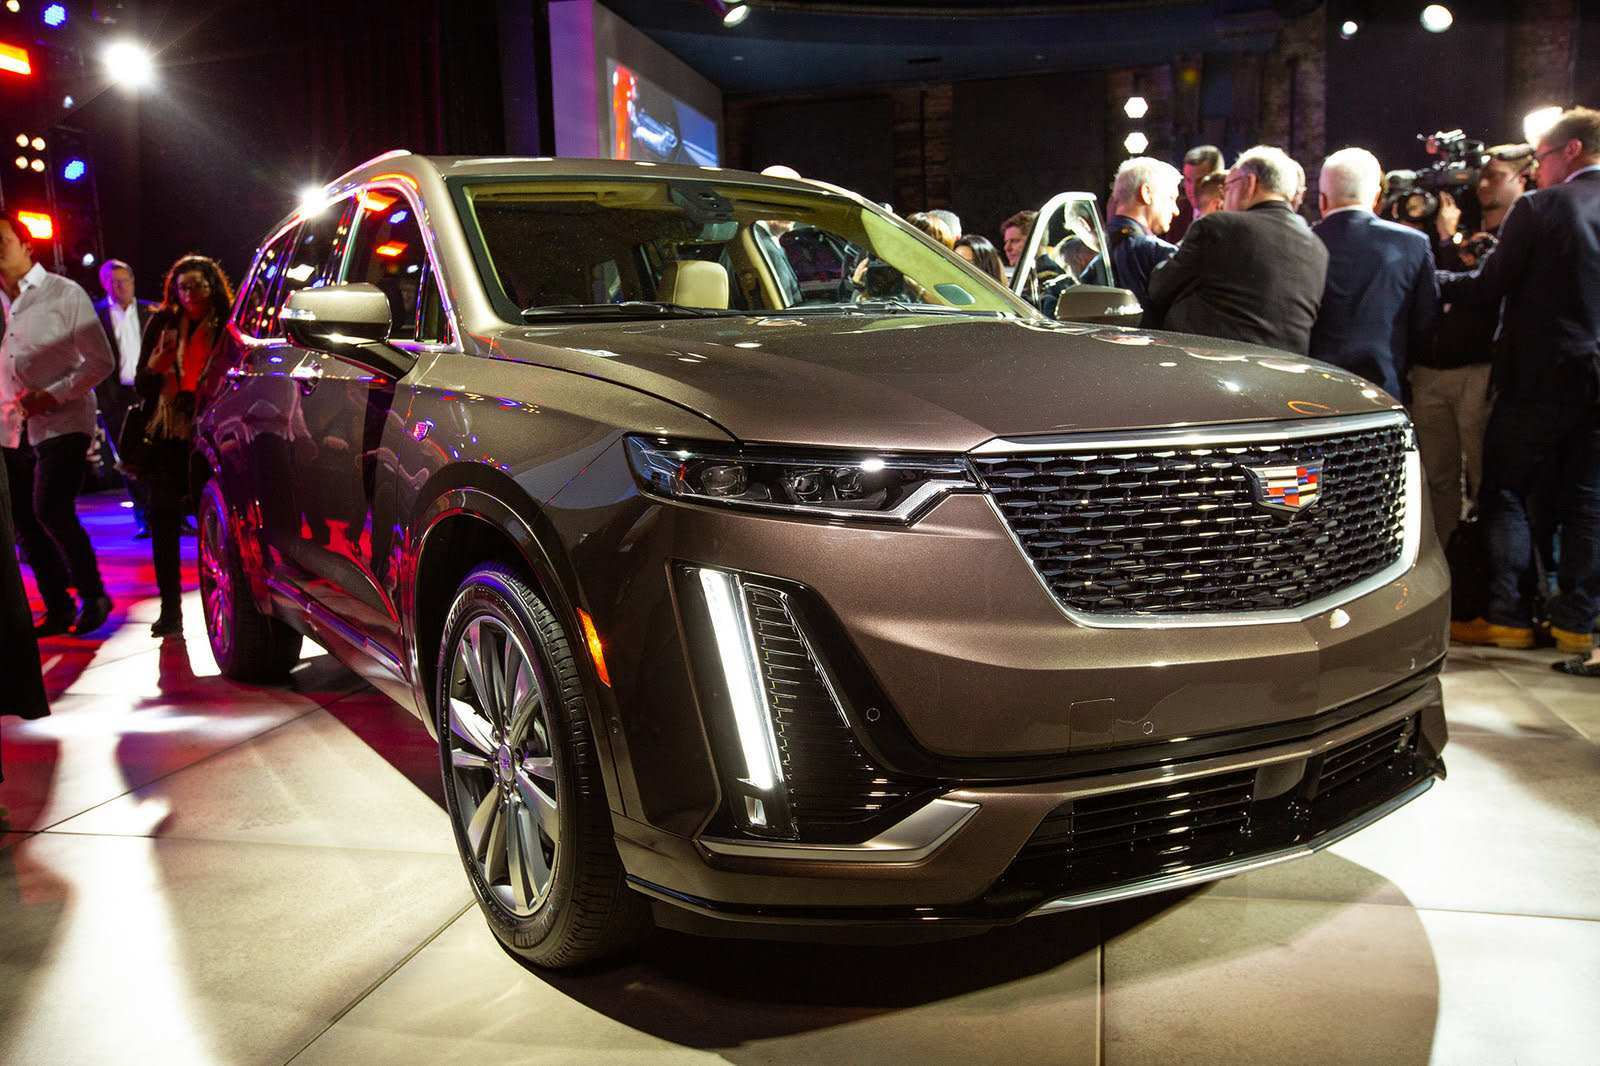 37 Concept of 2020 Cadillac Xt6 Review Pricing by 2020 Cadillac Xt6 Review